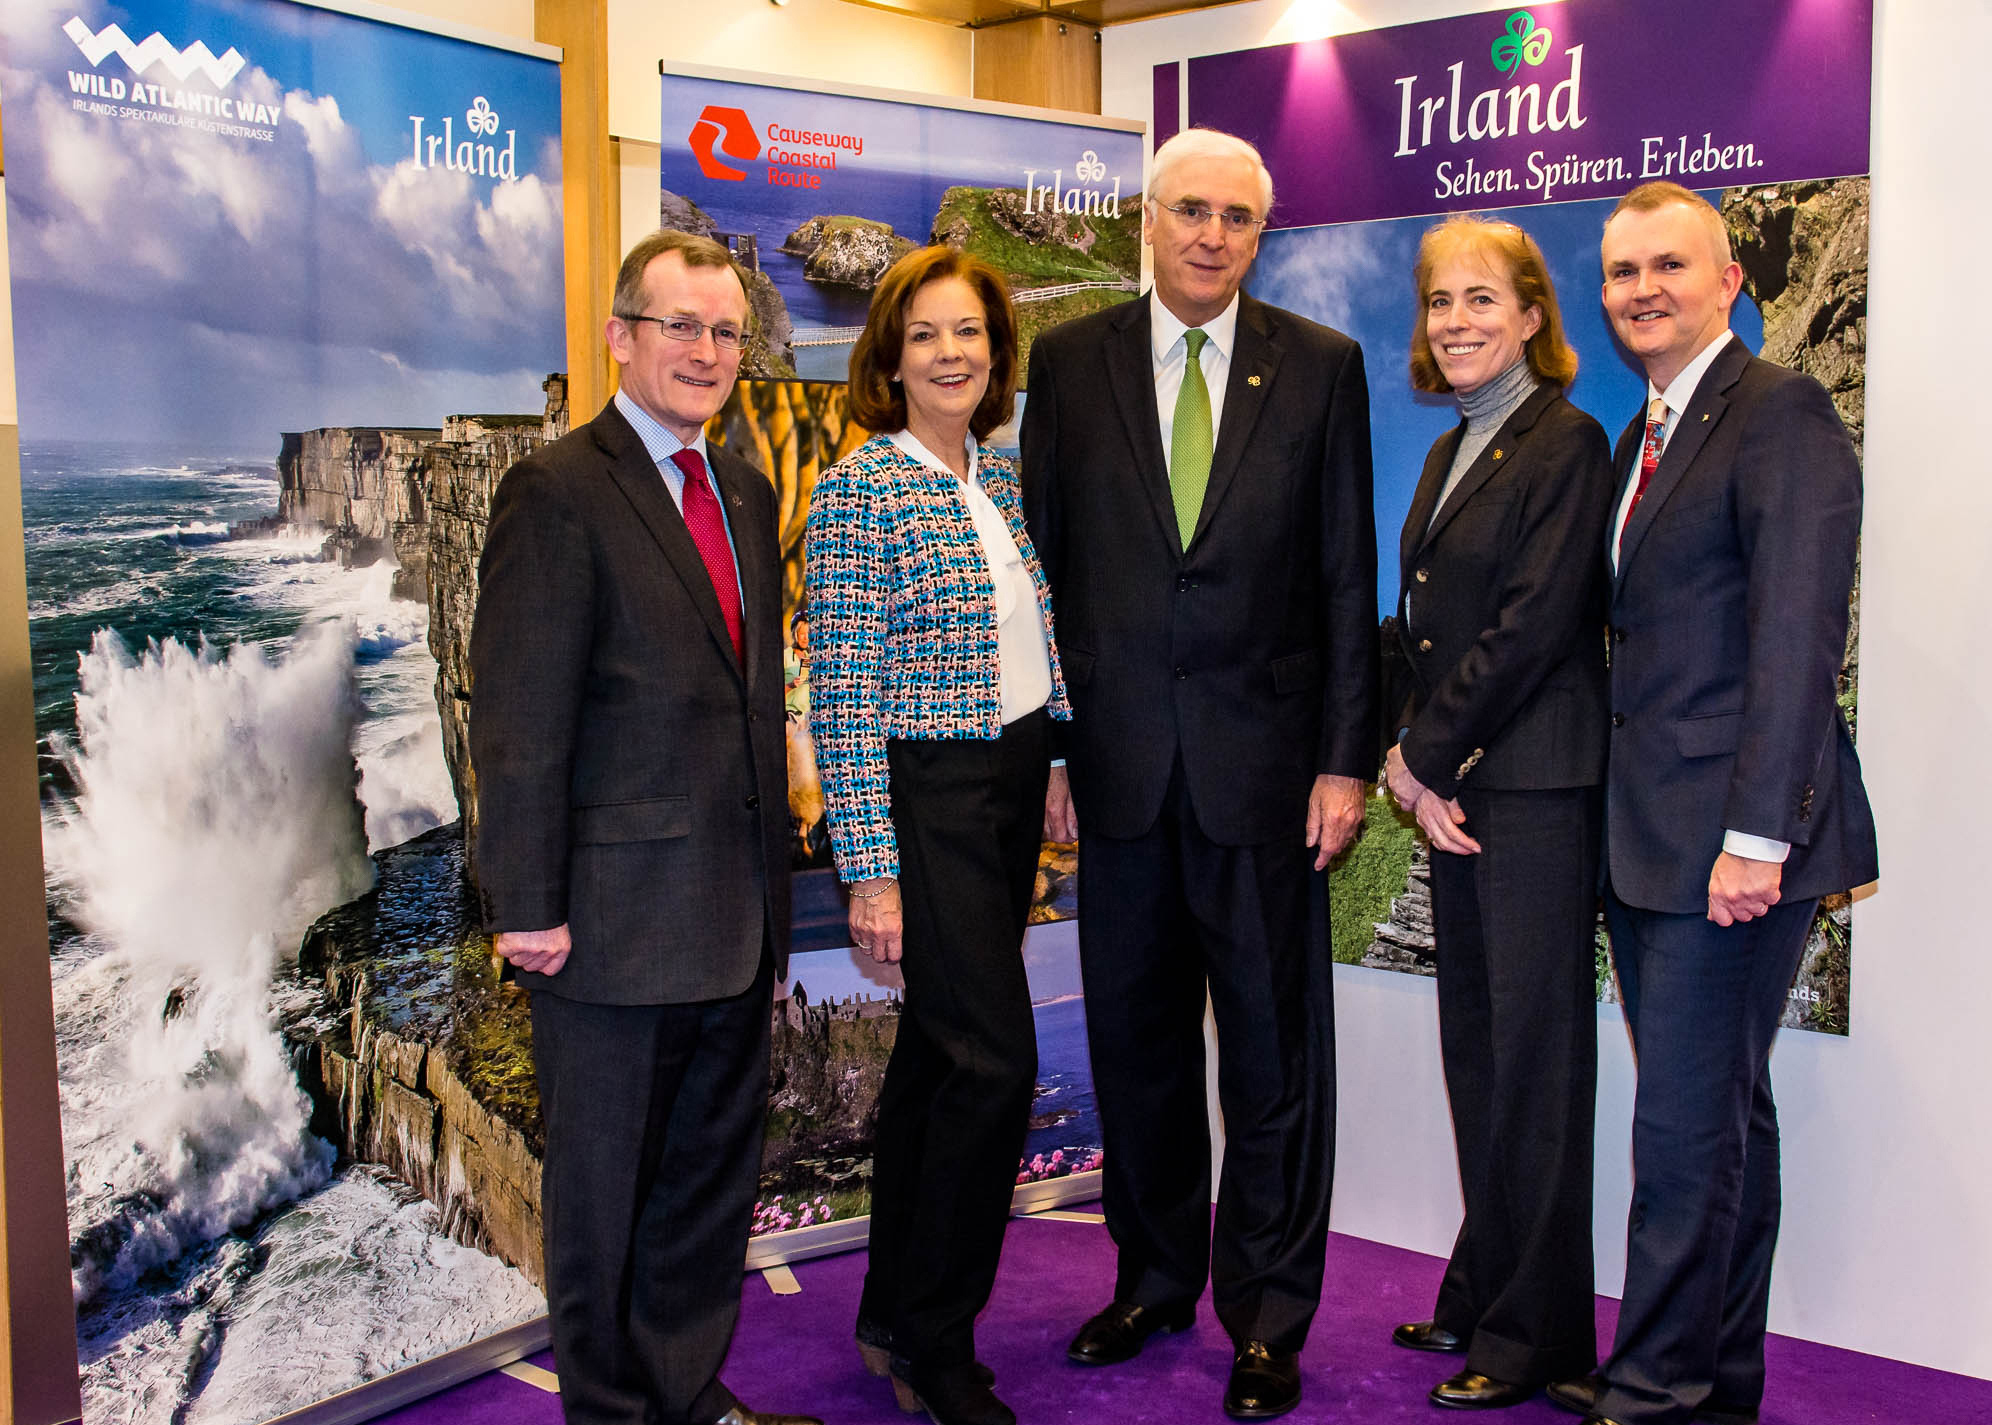 Cork Airport attends world's largest travel fair in Berlin